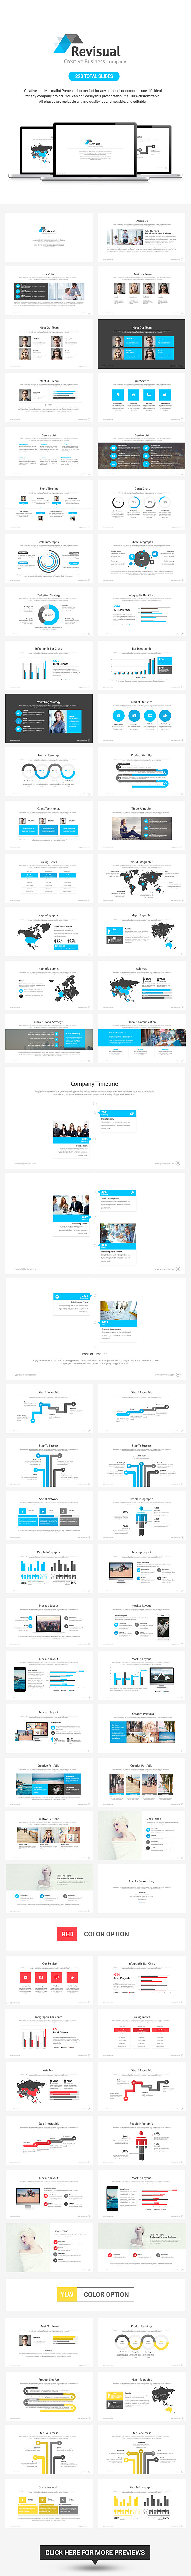 Revisual Powerpoint Template - Business PowerPoint Templates